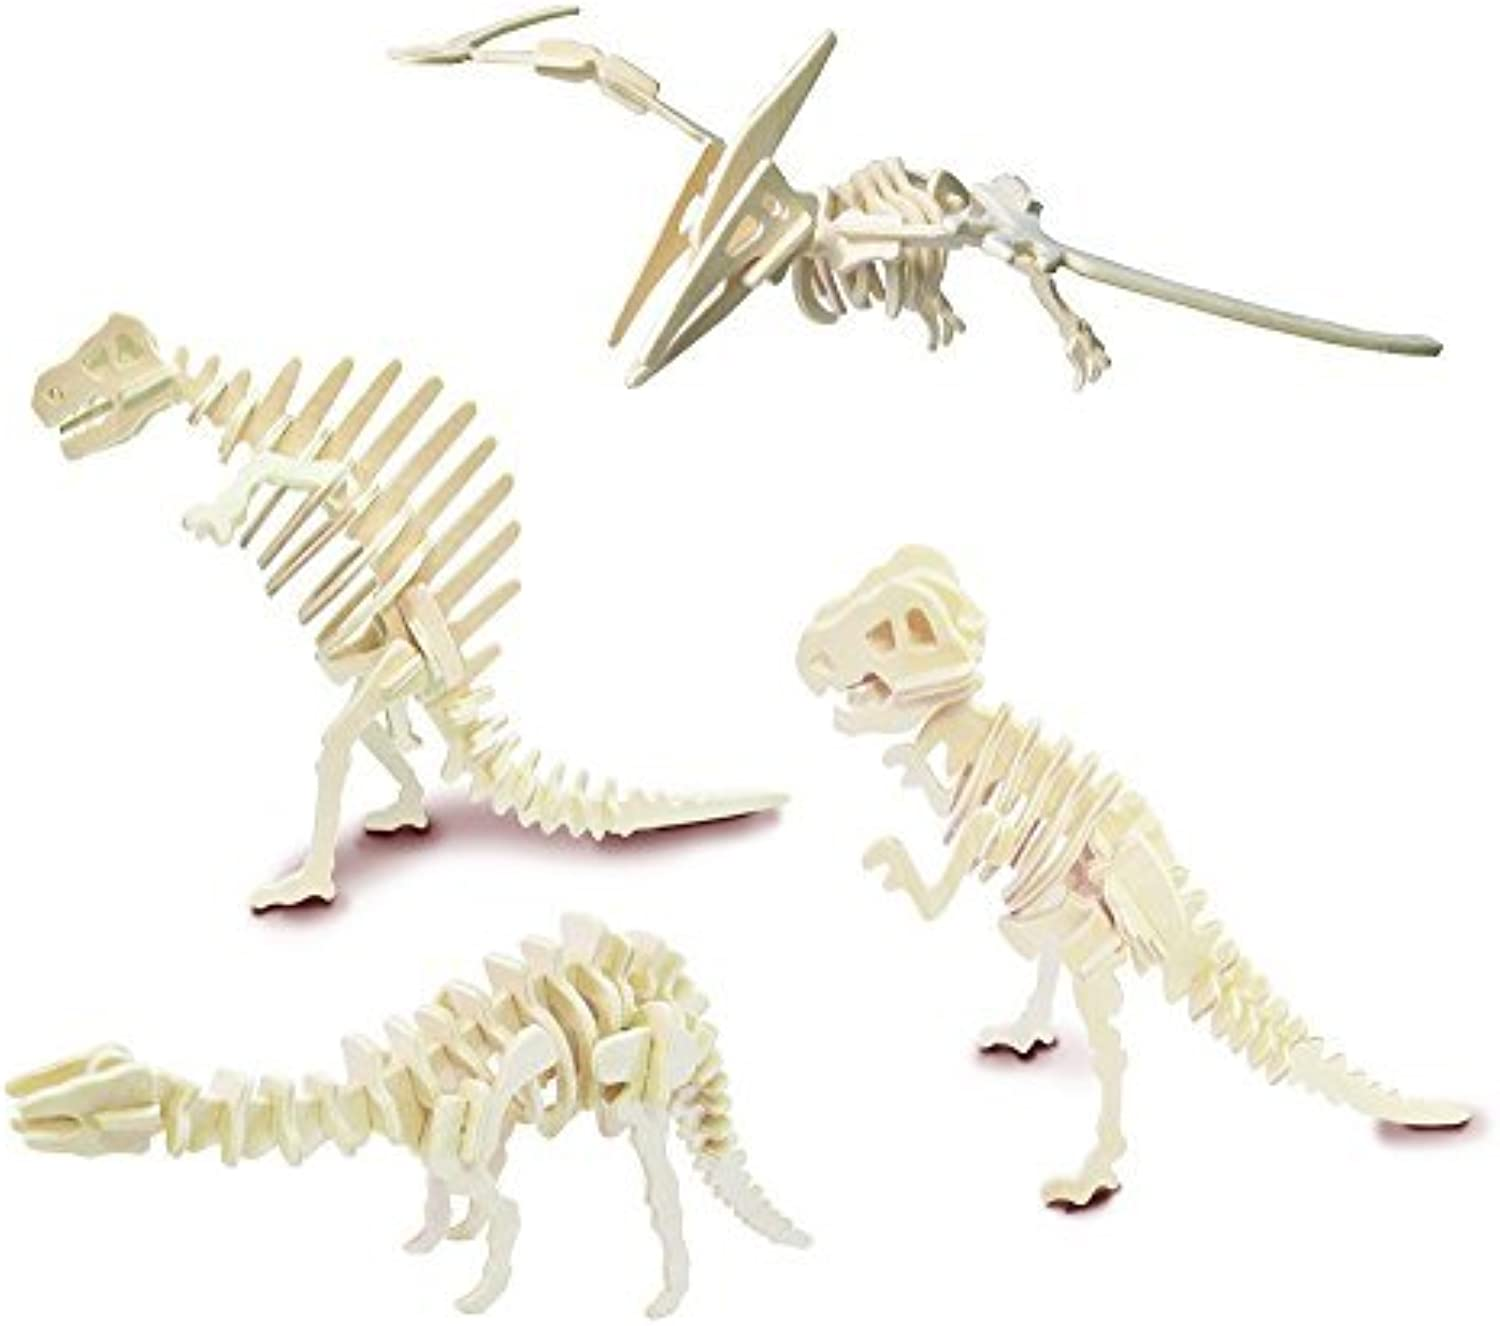 Dinosaur Set 4 - QUAY Woodcraft Construction Kit FSC by Quay